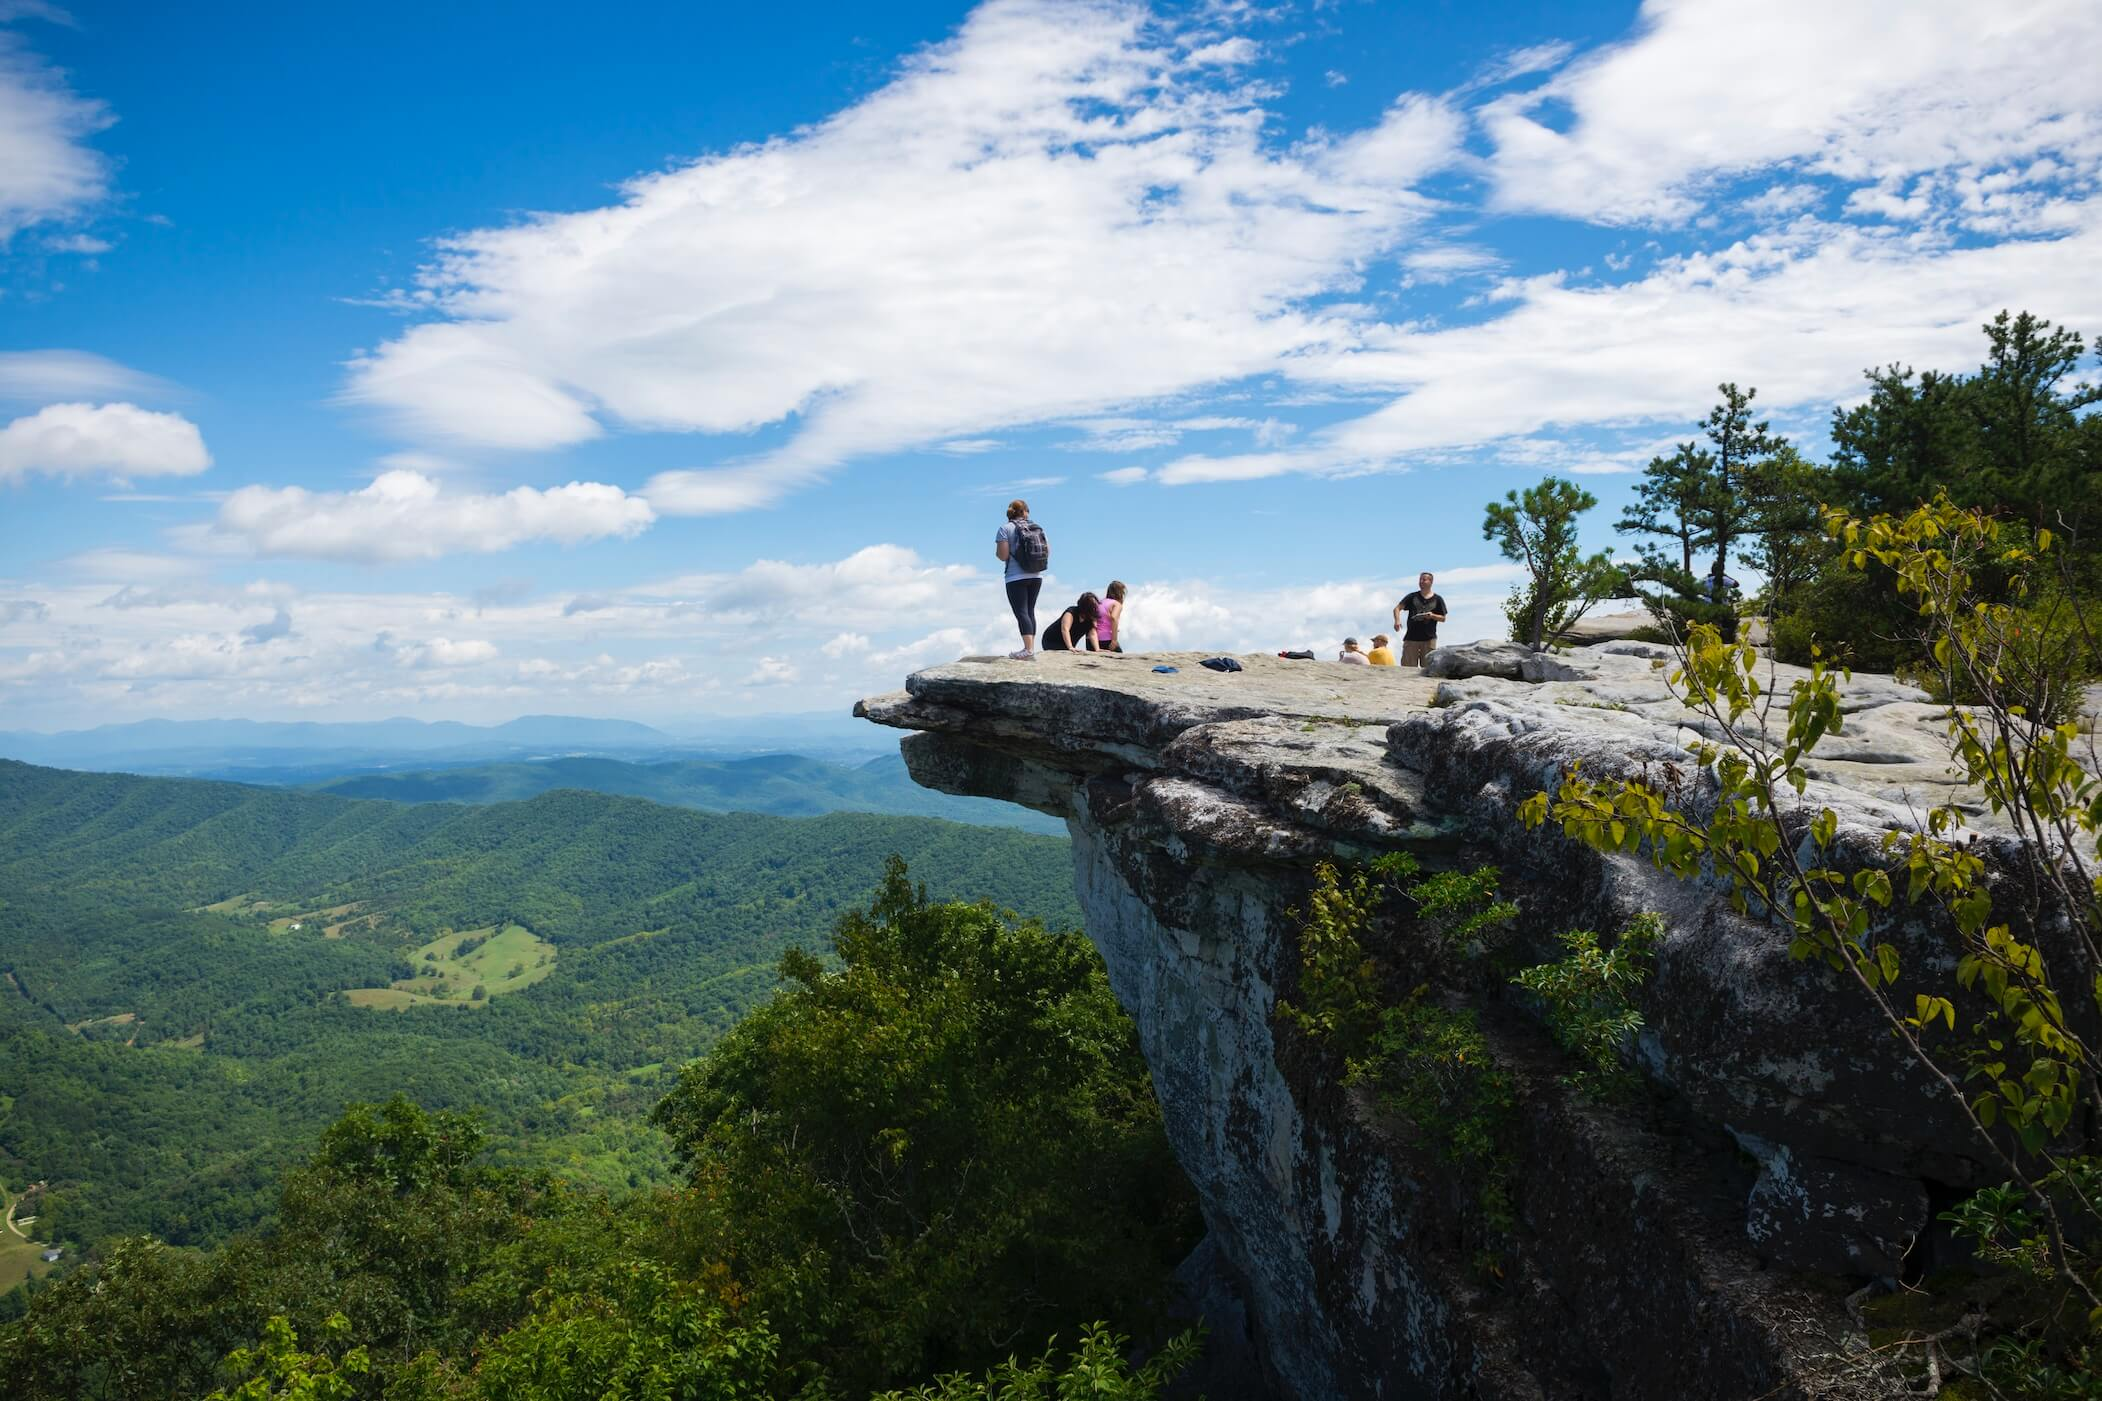 People explore a cliff on the Appalachian Trail.